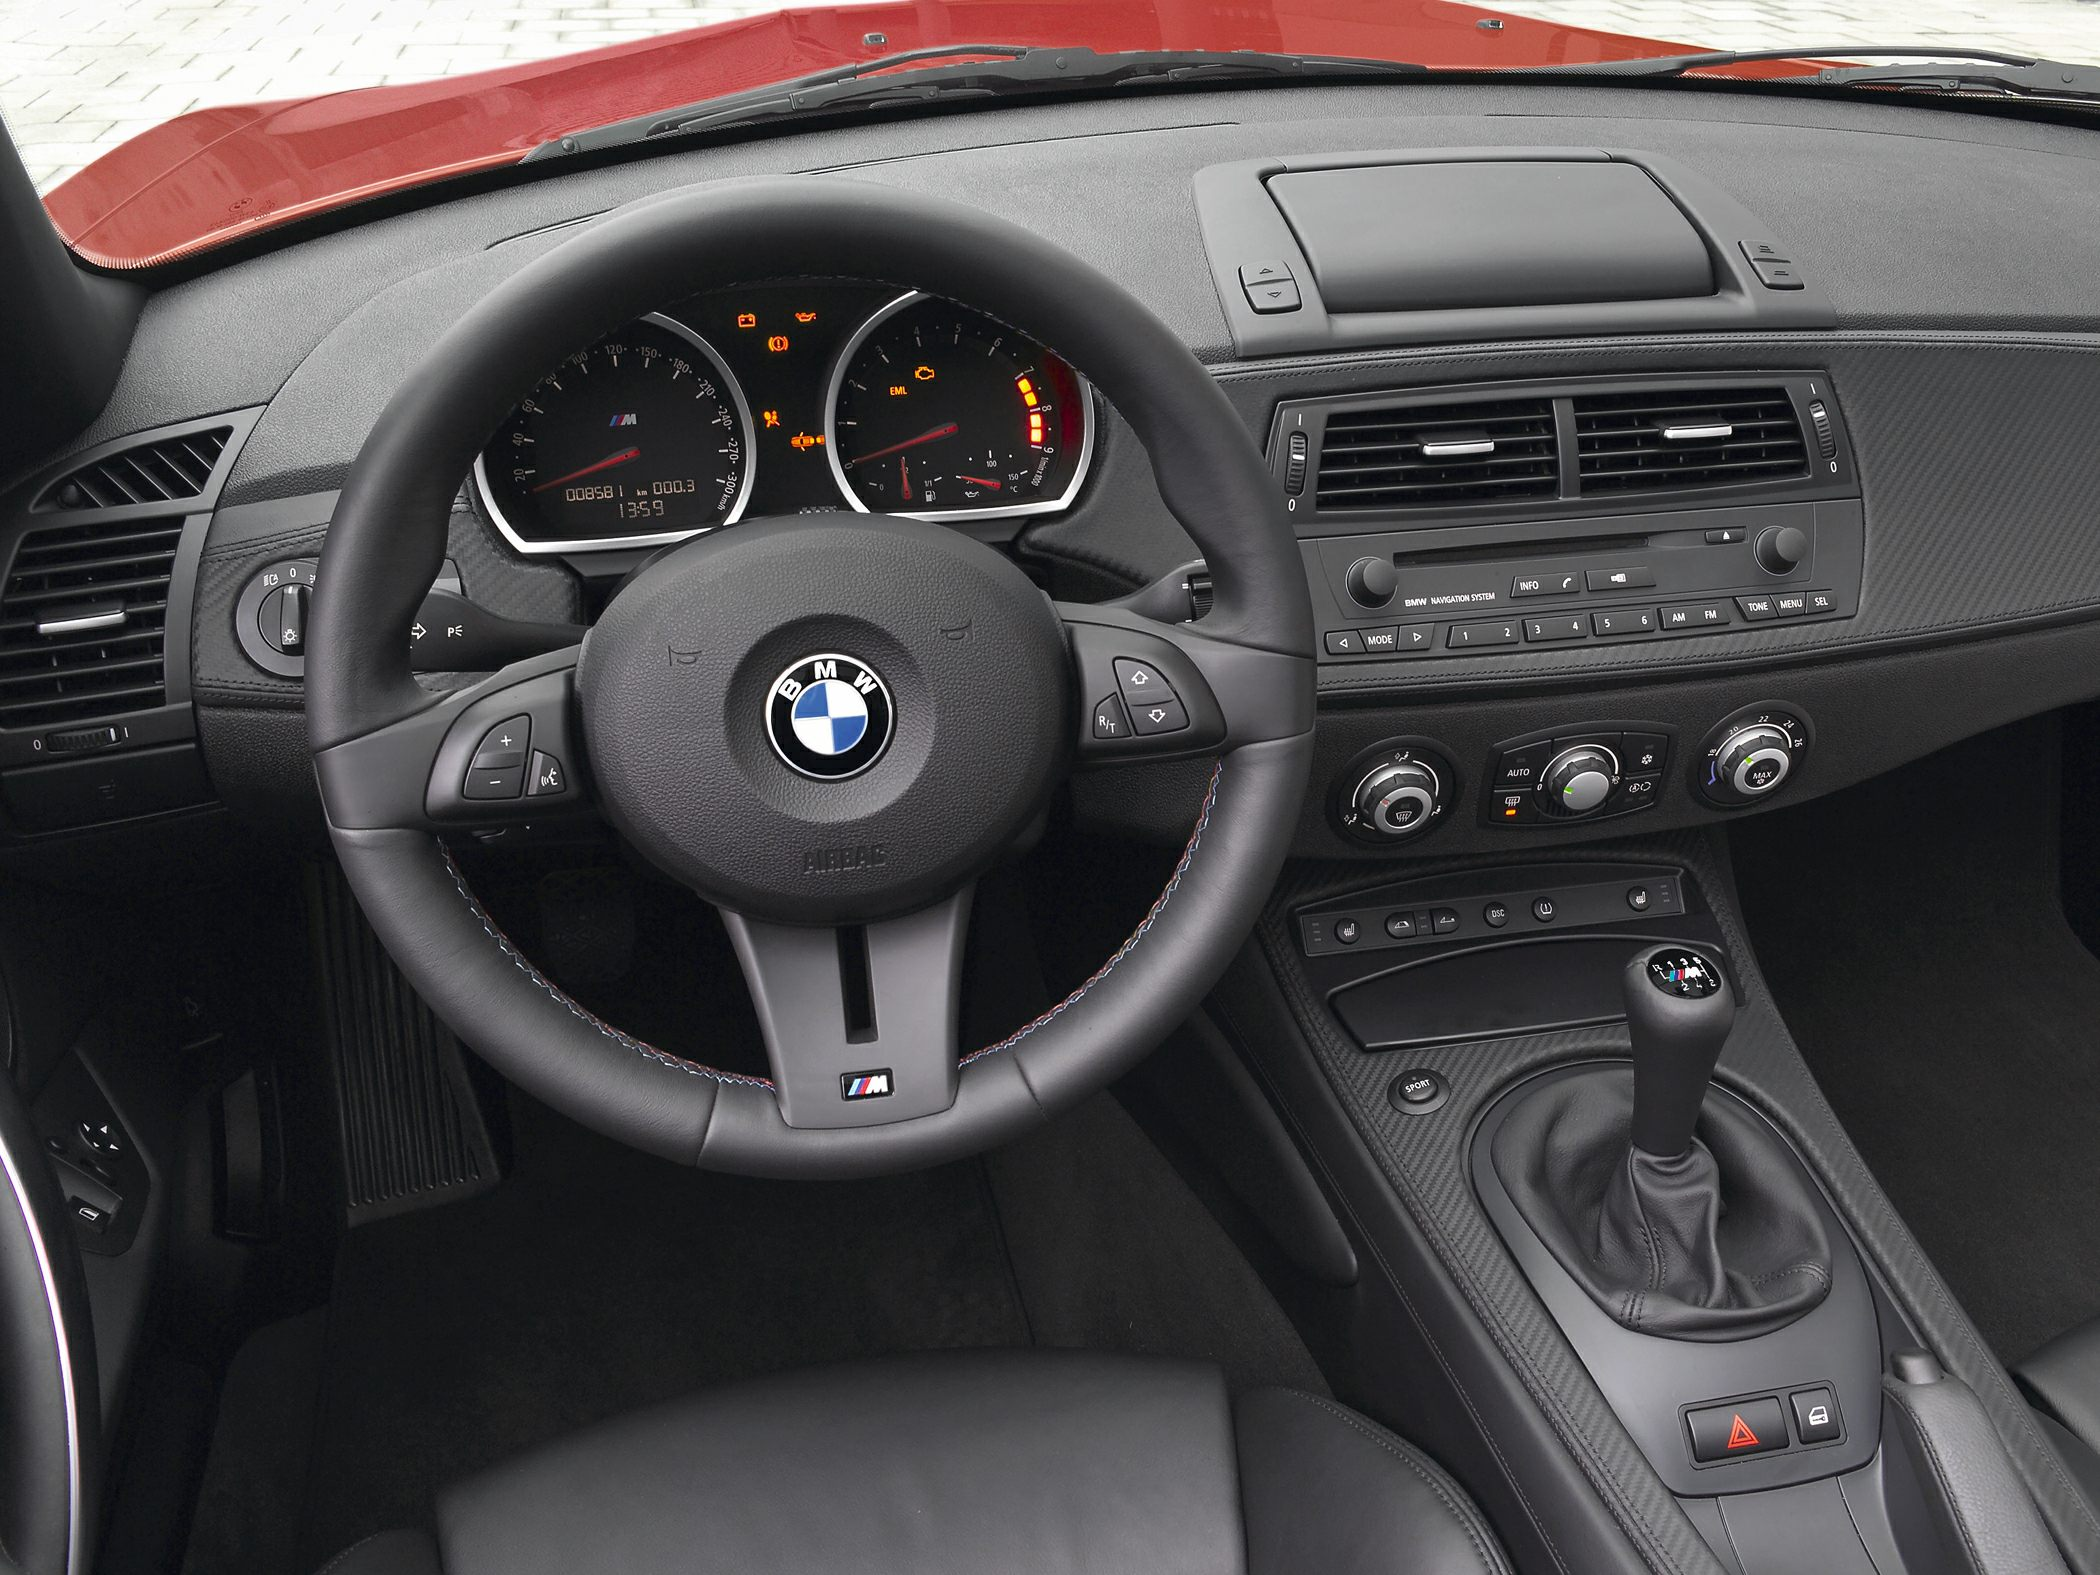 2008 Bmw Z4m Pictures Amp Photos Carsdirect